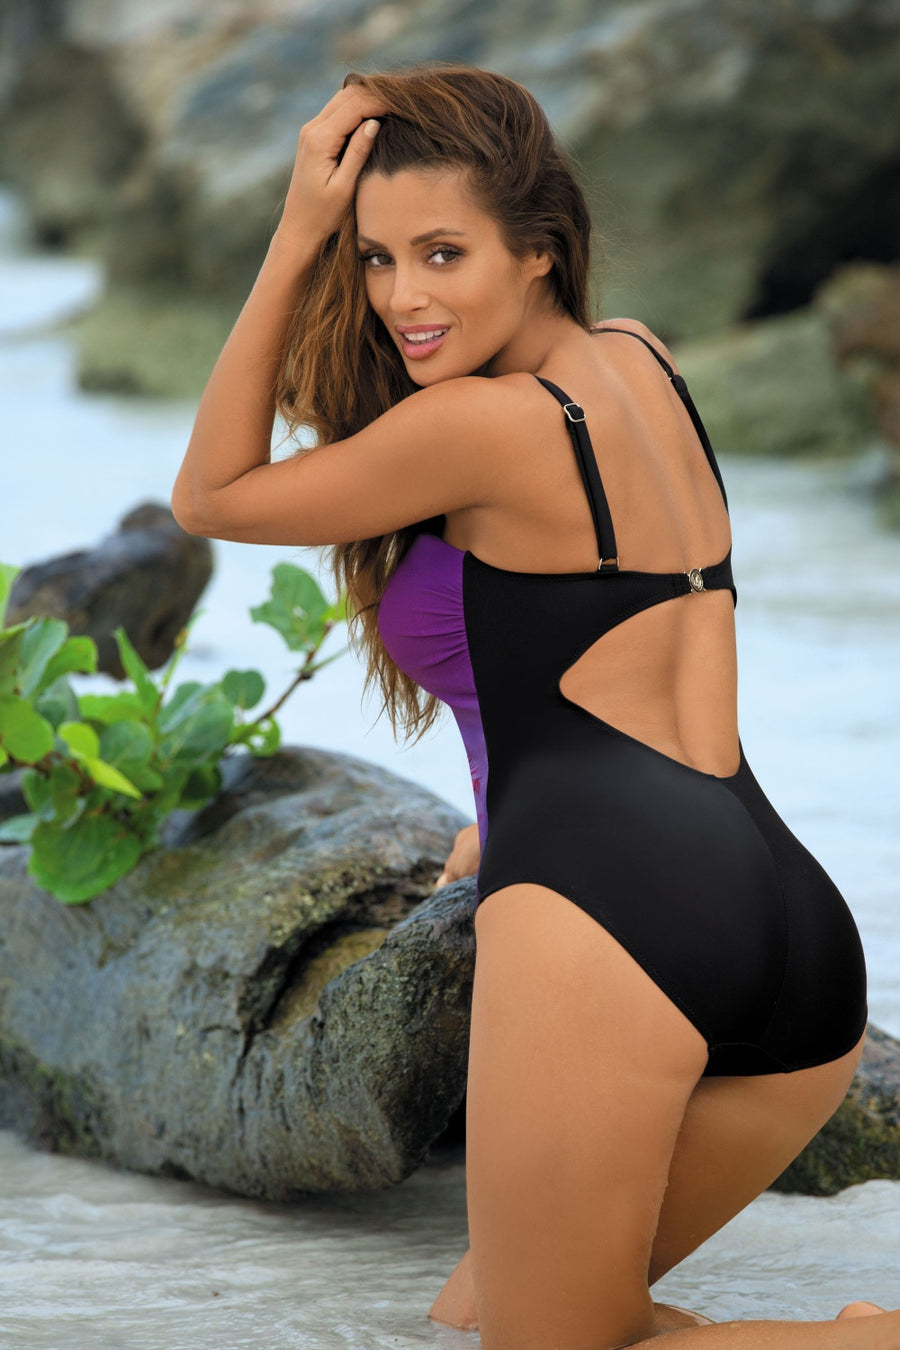 Swimsuit one piece model 80114 Marko